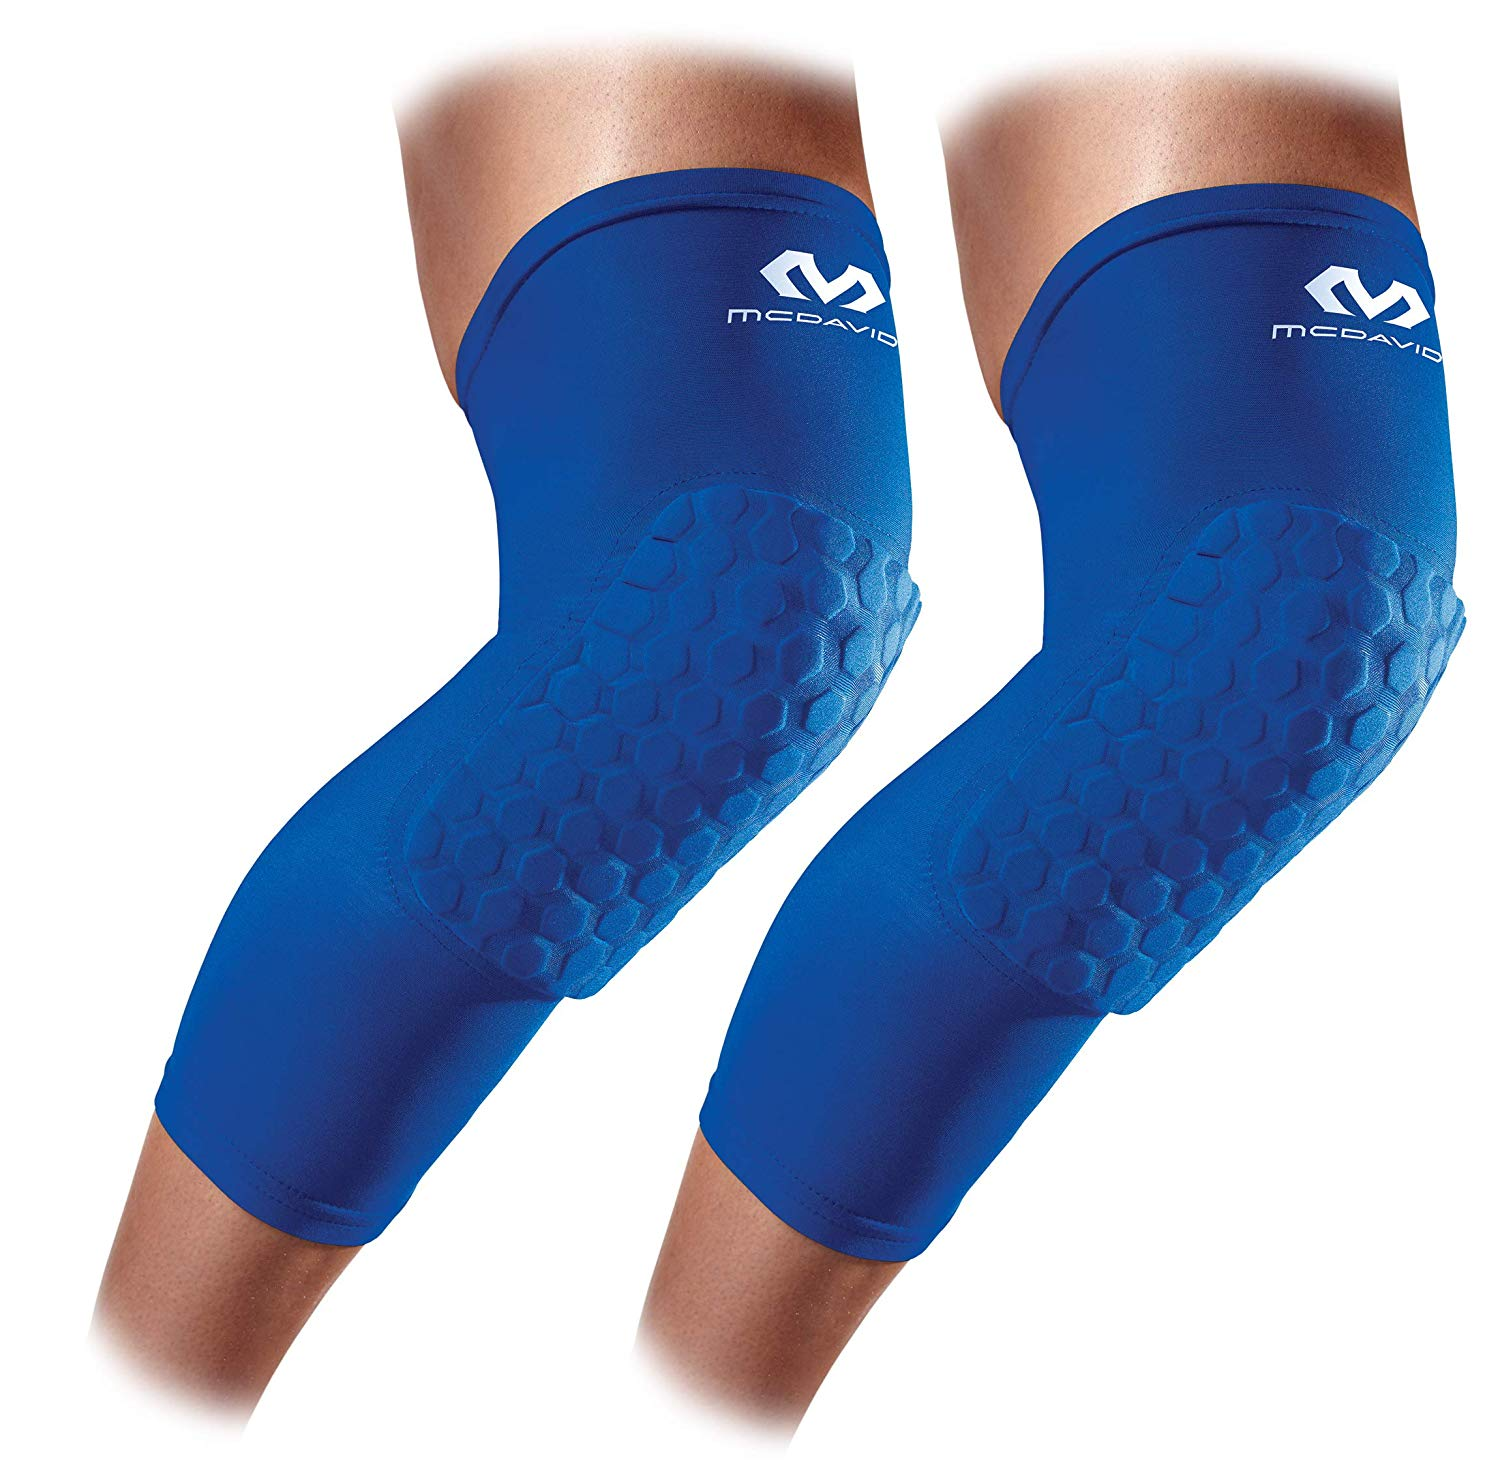 34121067b5 Get Quotations · Mcdavid 6446 Hex Knee Pads Compression Leg Sleeve for  Basketball, Football & All Contact Sports